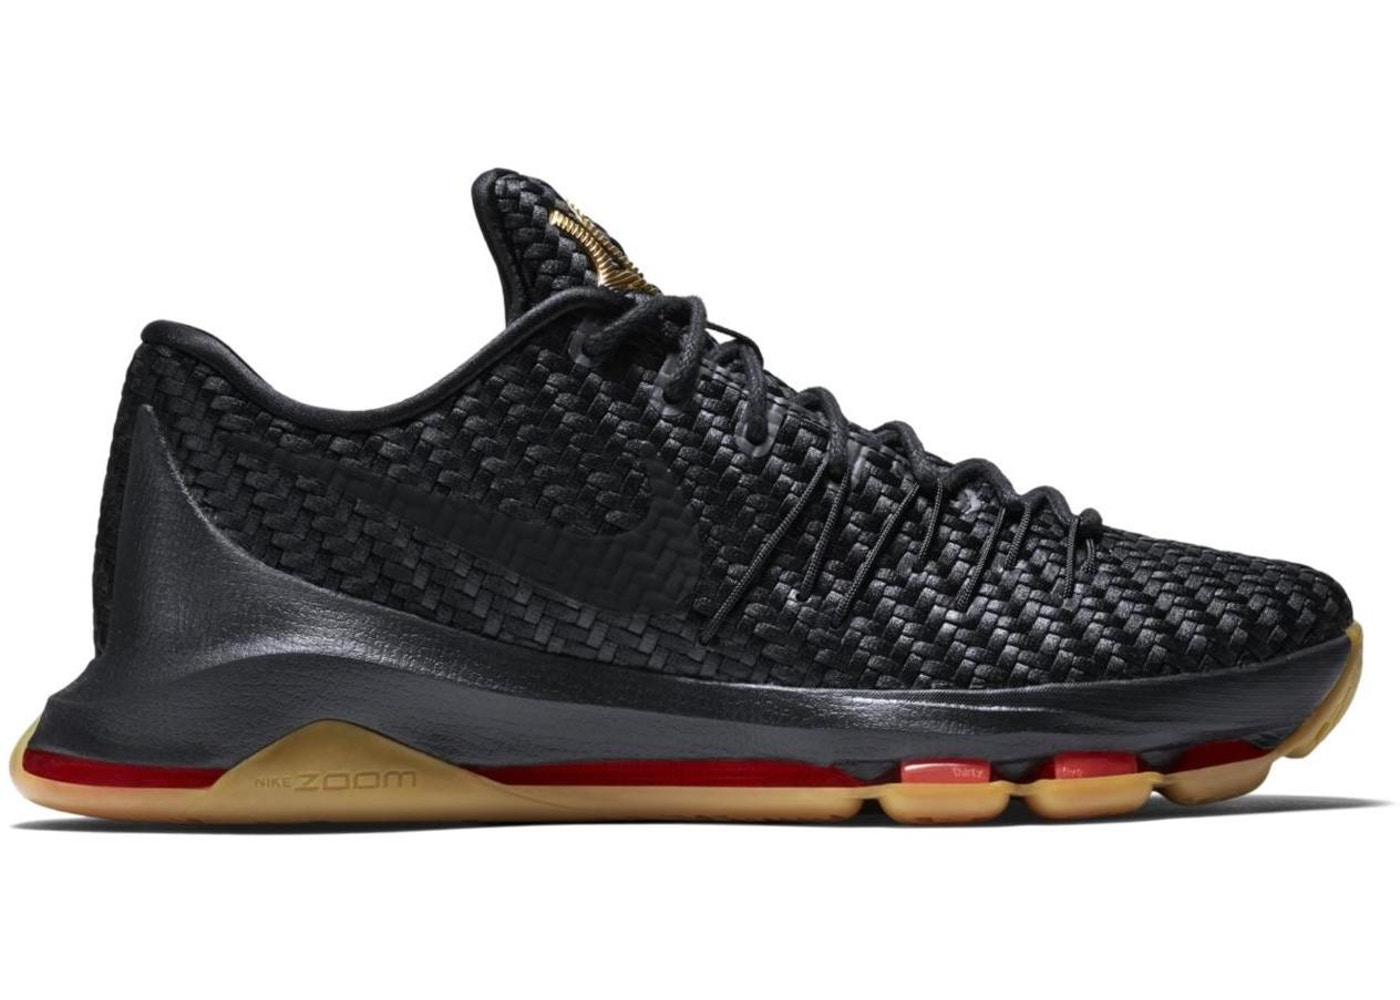 ナイキ NIKE ウーブン スニーカー 【 WOVEN KD 8 EXT WONDER BLACK BLACKMETALLIC GOLDLASER CRIMSON 】 メンズ